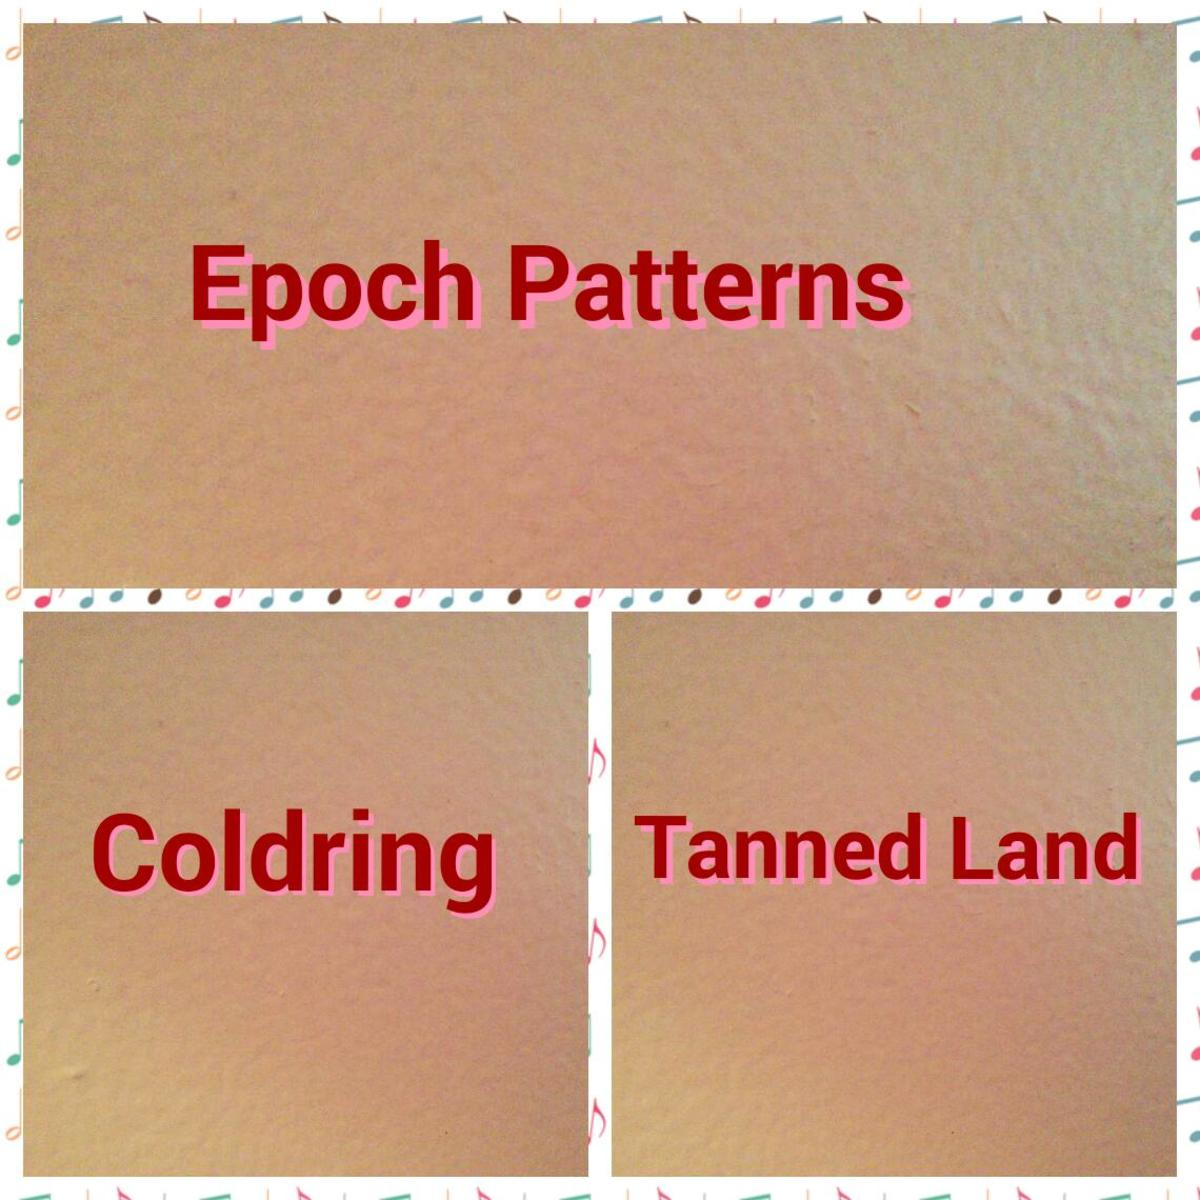 In Order and Chaos, the Epoch pattern can be found in Coloring and in the Tanned Land.